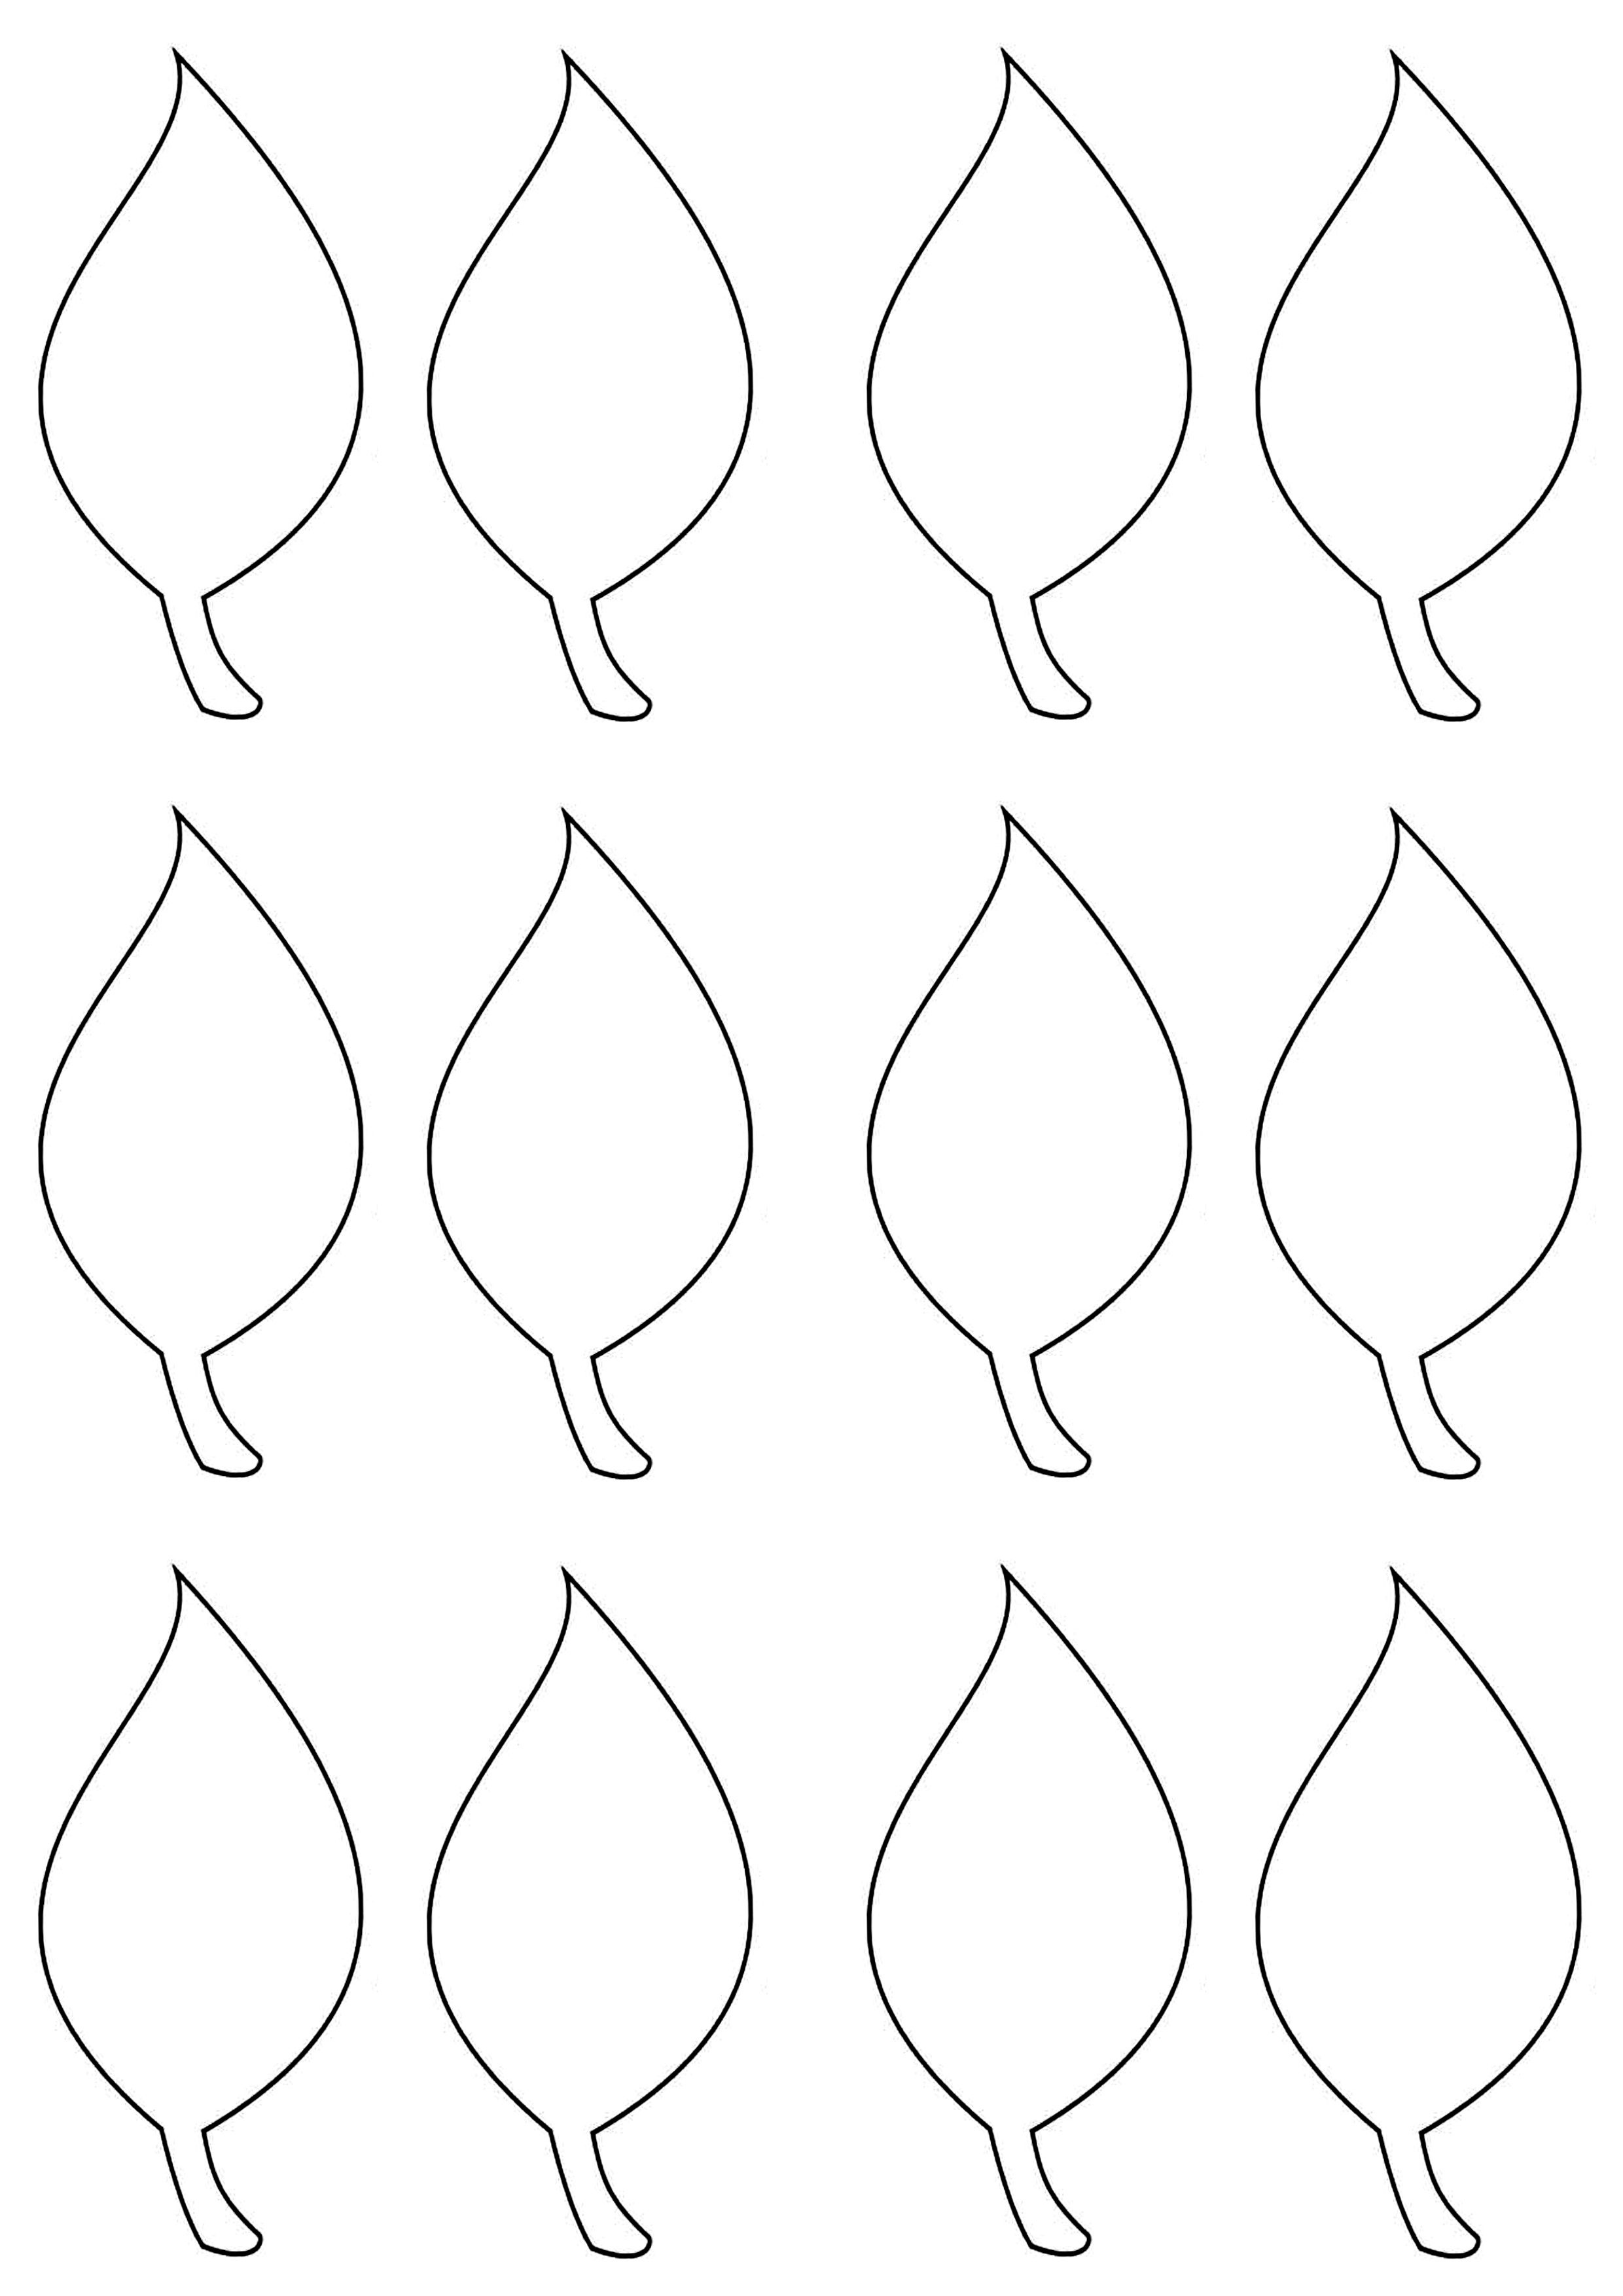 Leaf Template   Easter, Spring & St. Patty's Day   Leaf Template - Free Printable Leaf Template